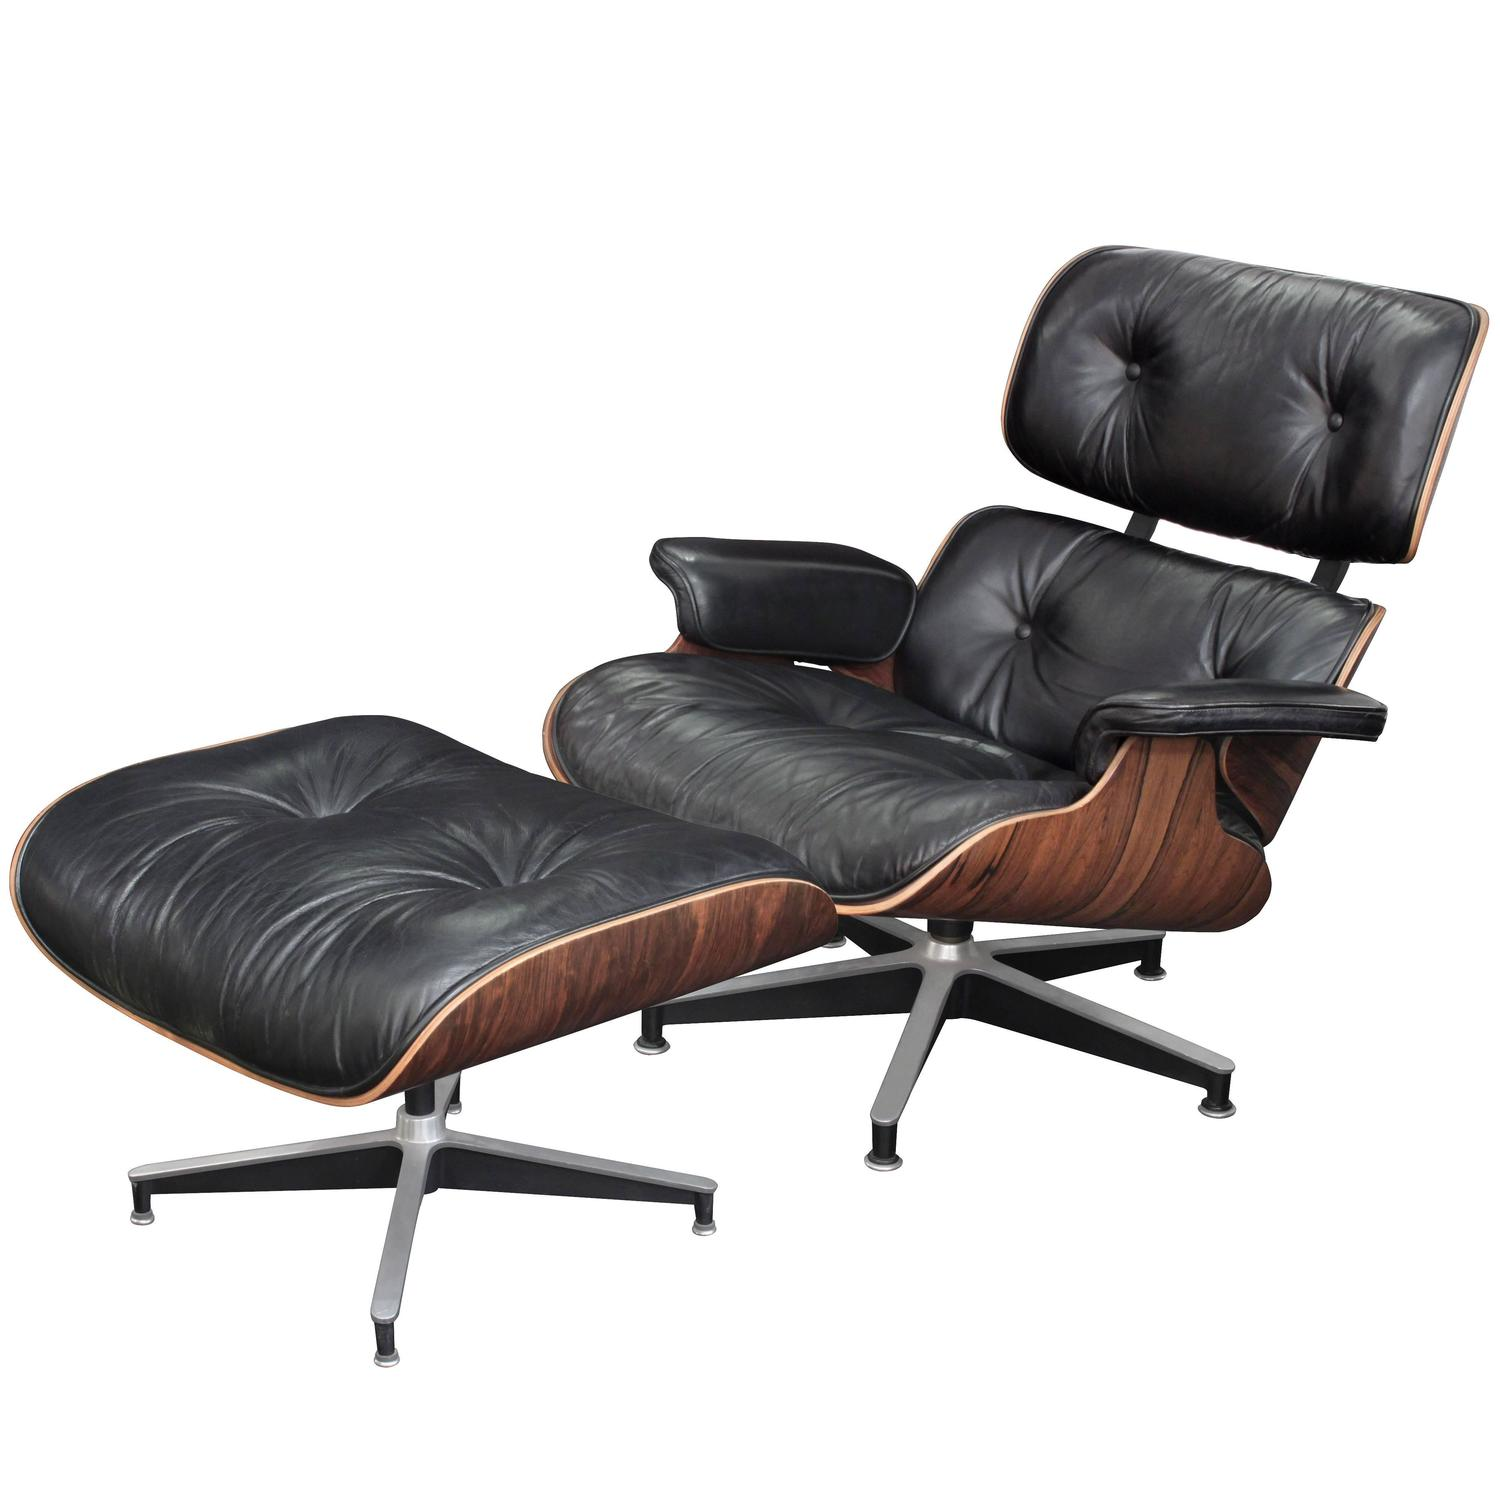 Charles Eames Lounge Chair Iconic Lounge Chair And Ottoman By Charles And Ray Eames